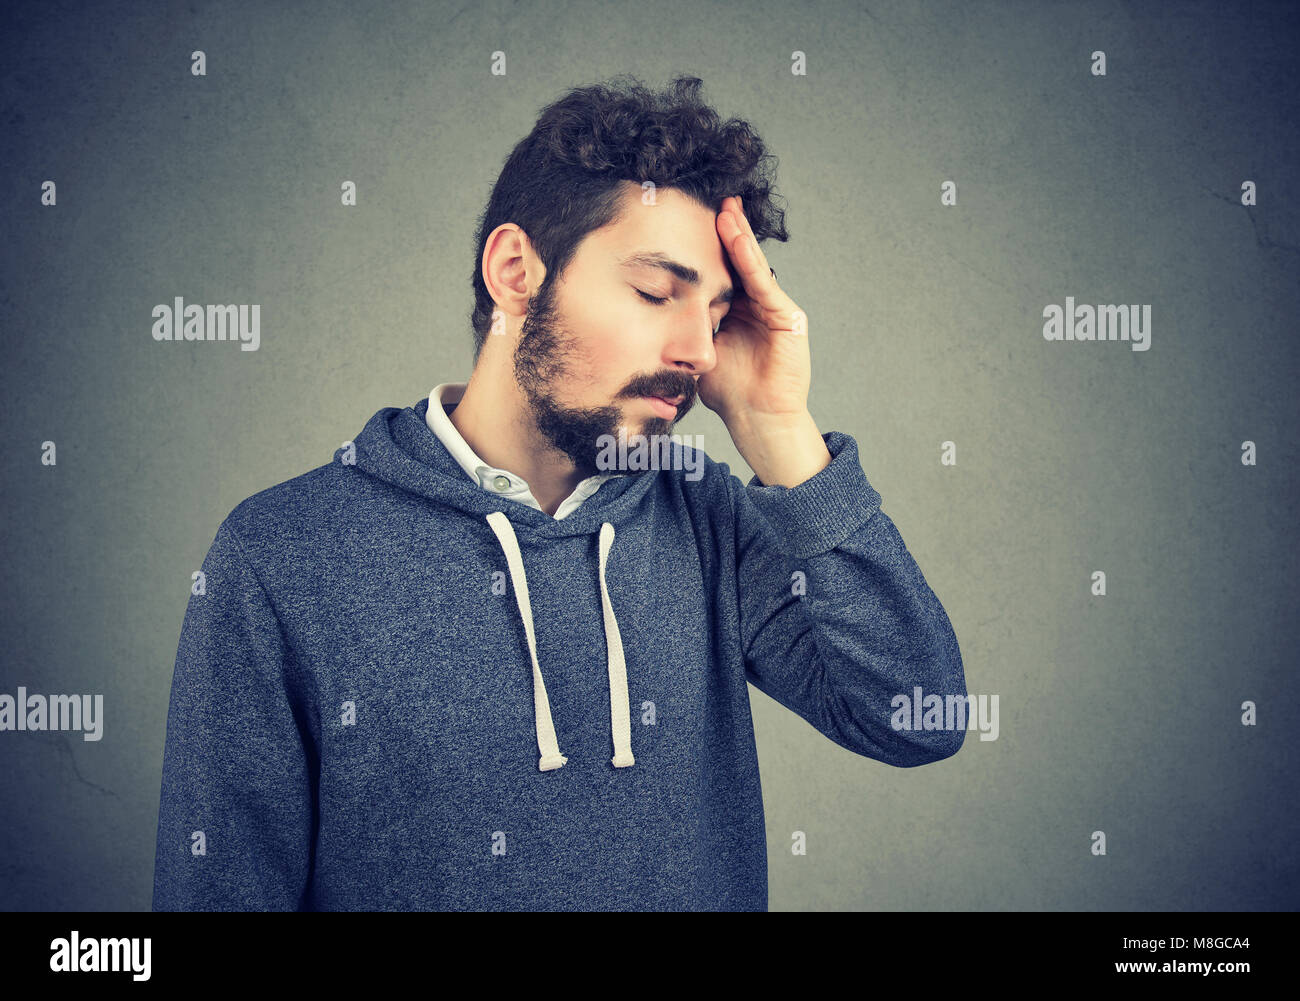 Young casual hipster with beard suffering from misfortune looking tired while rubbing head. - Stock Image